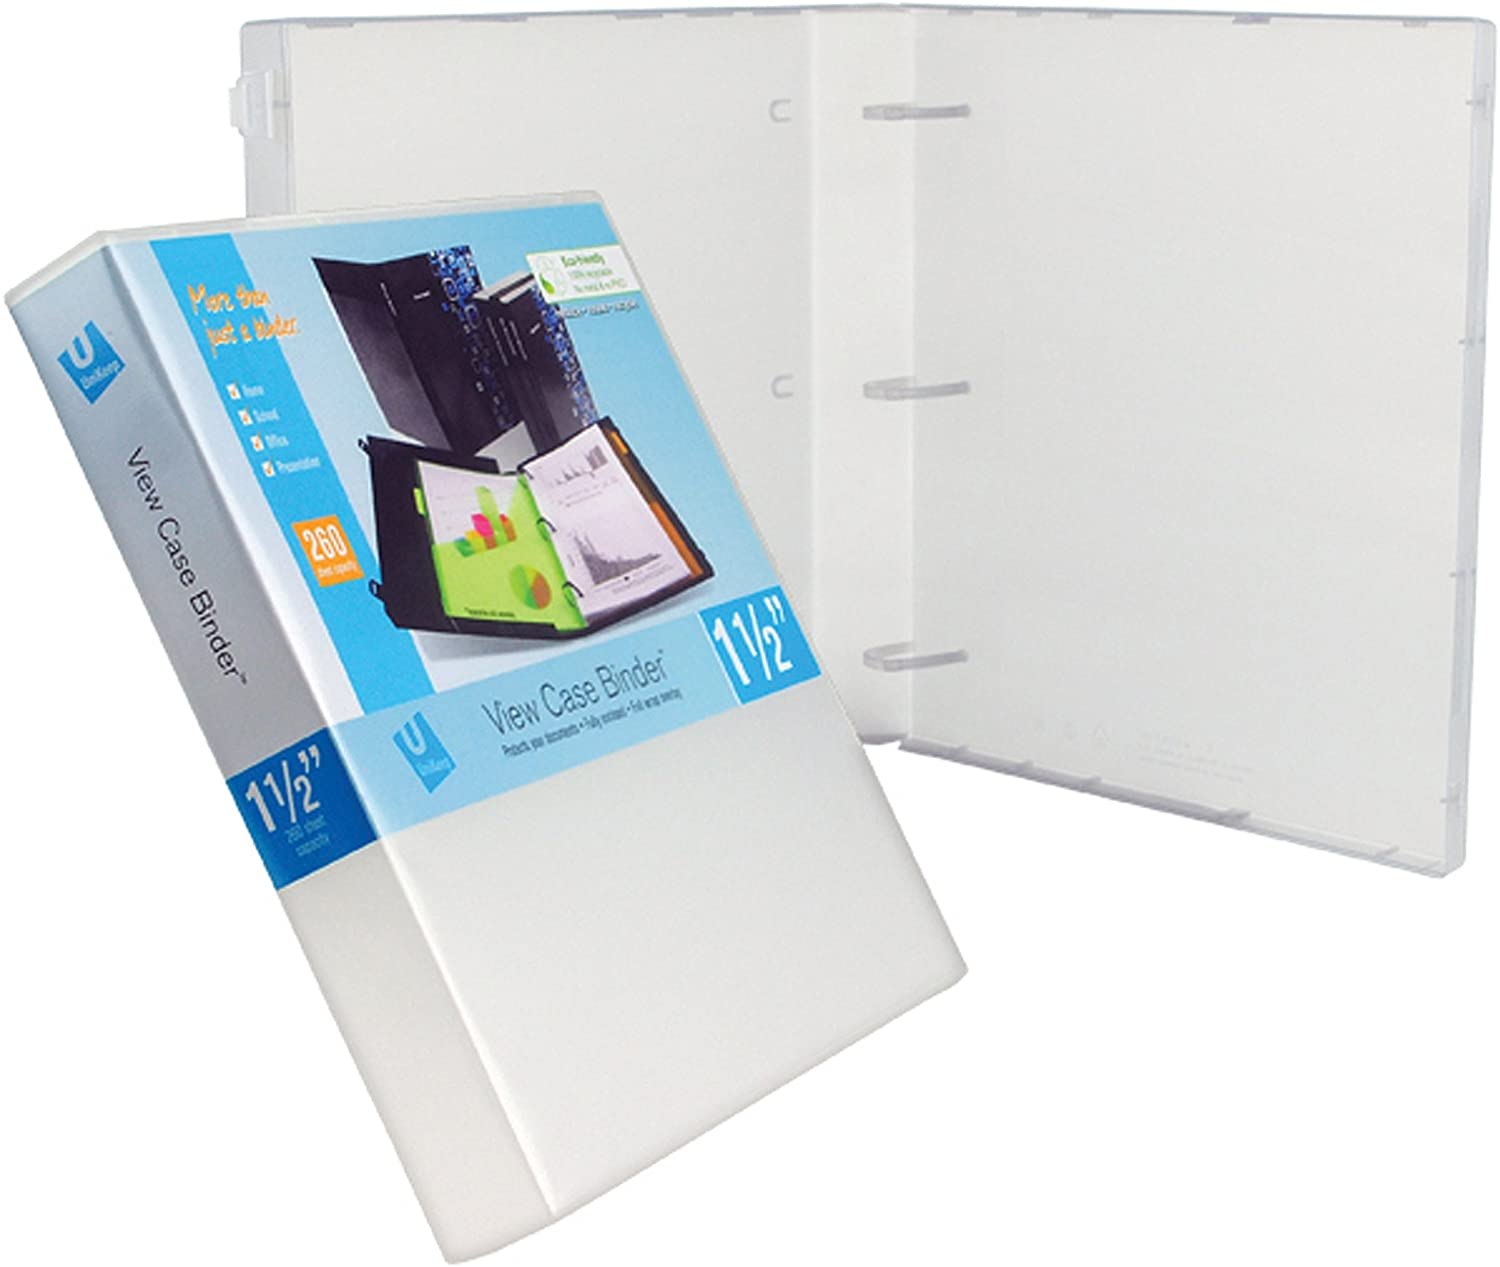 UniKeep 3 Ring Binder - White - Case View Binder - 1.5 Inch Spine - with Clear Outer Overlay - Pack of 3 Binders